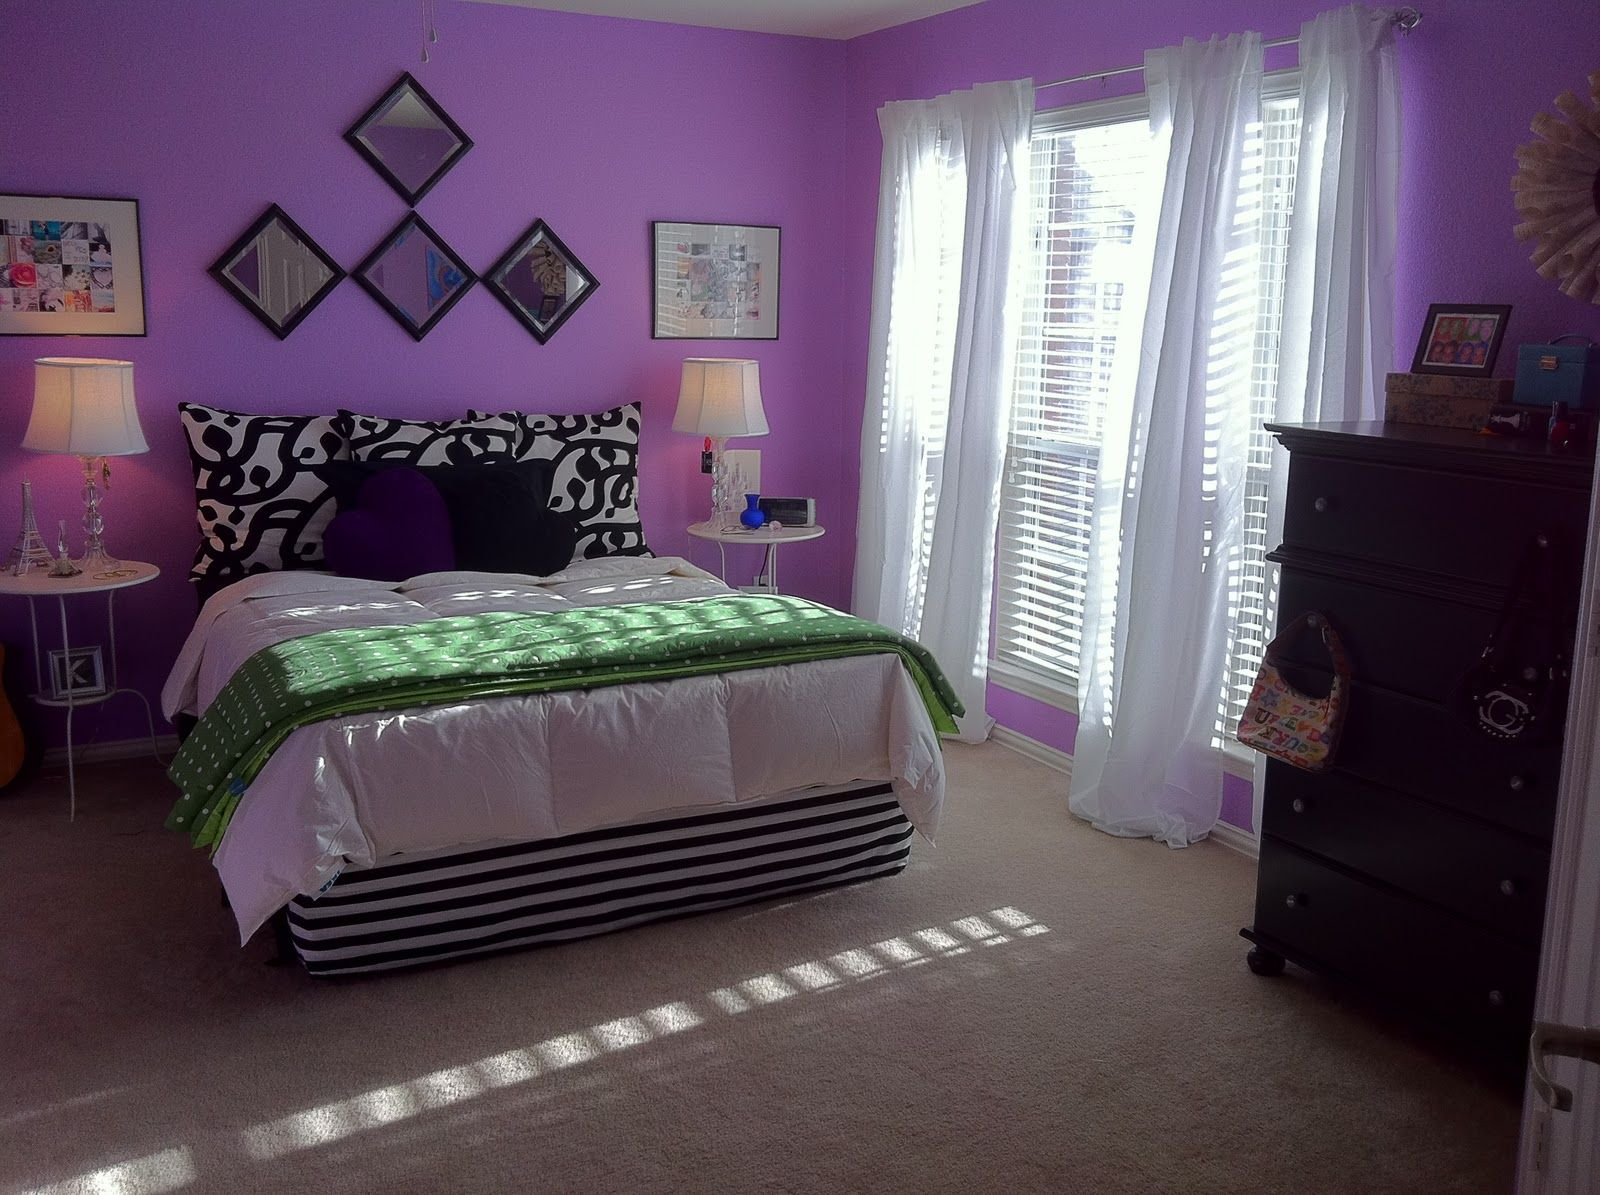 Violet bedroom color ideas - New Room Ideas For 9 Year Olds Pennies A Day Decorating